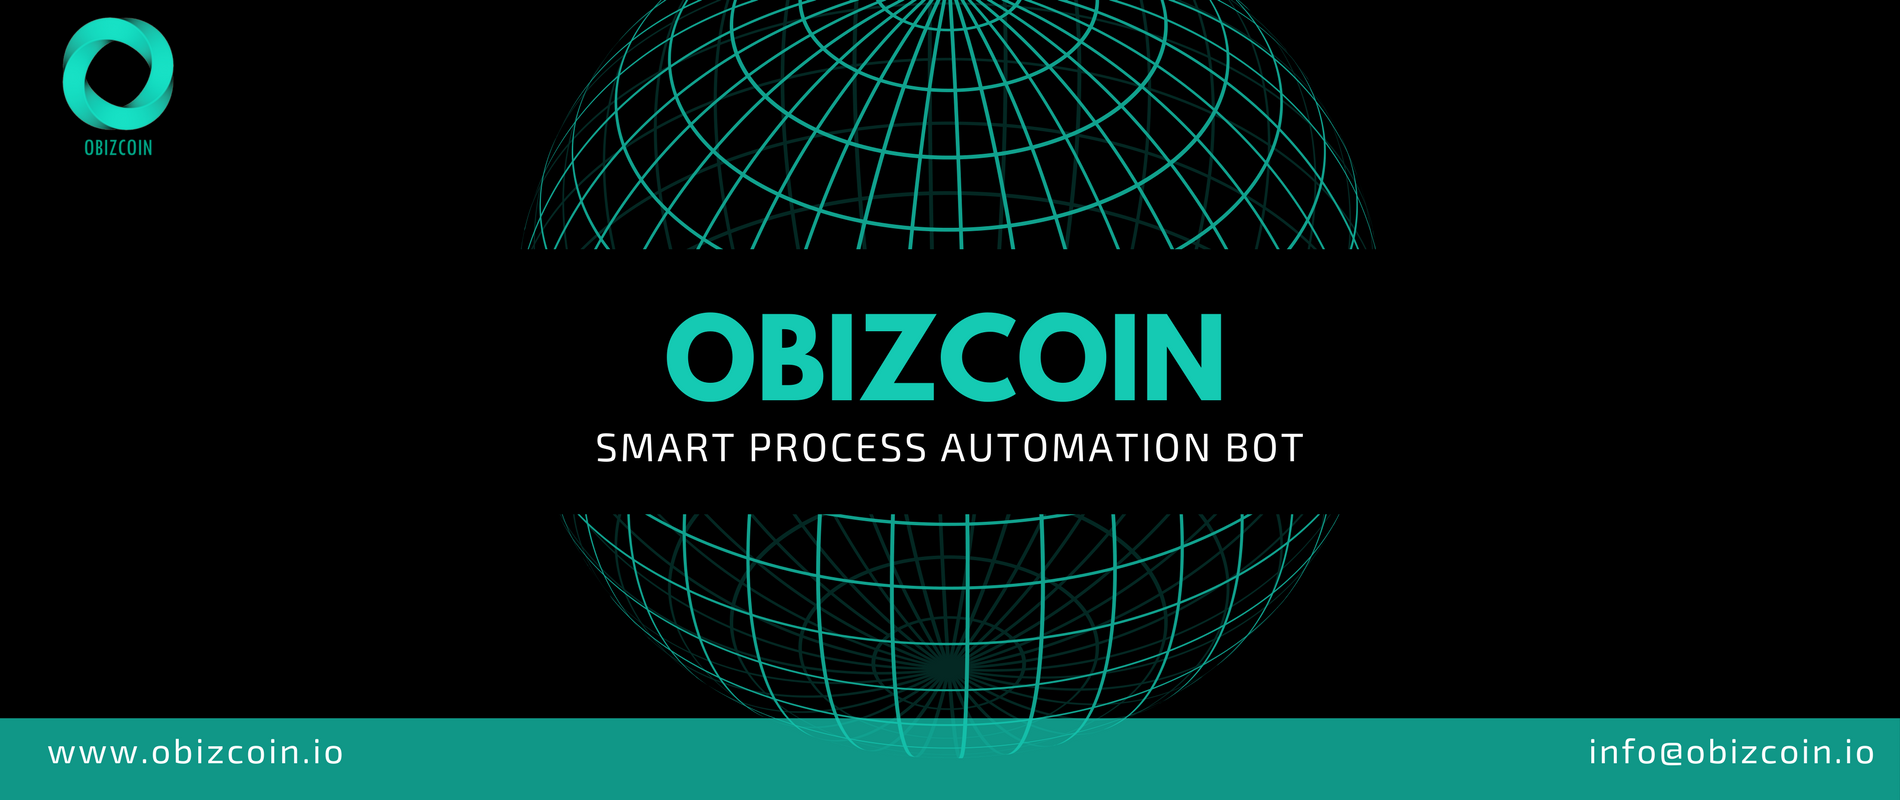 Obizcoin-Brand-Image.png